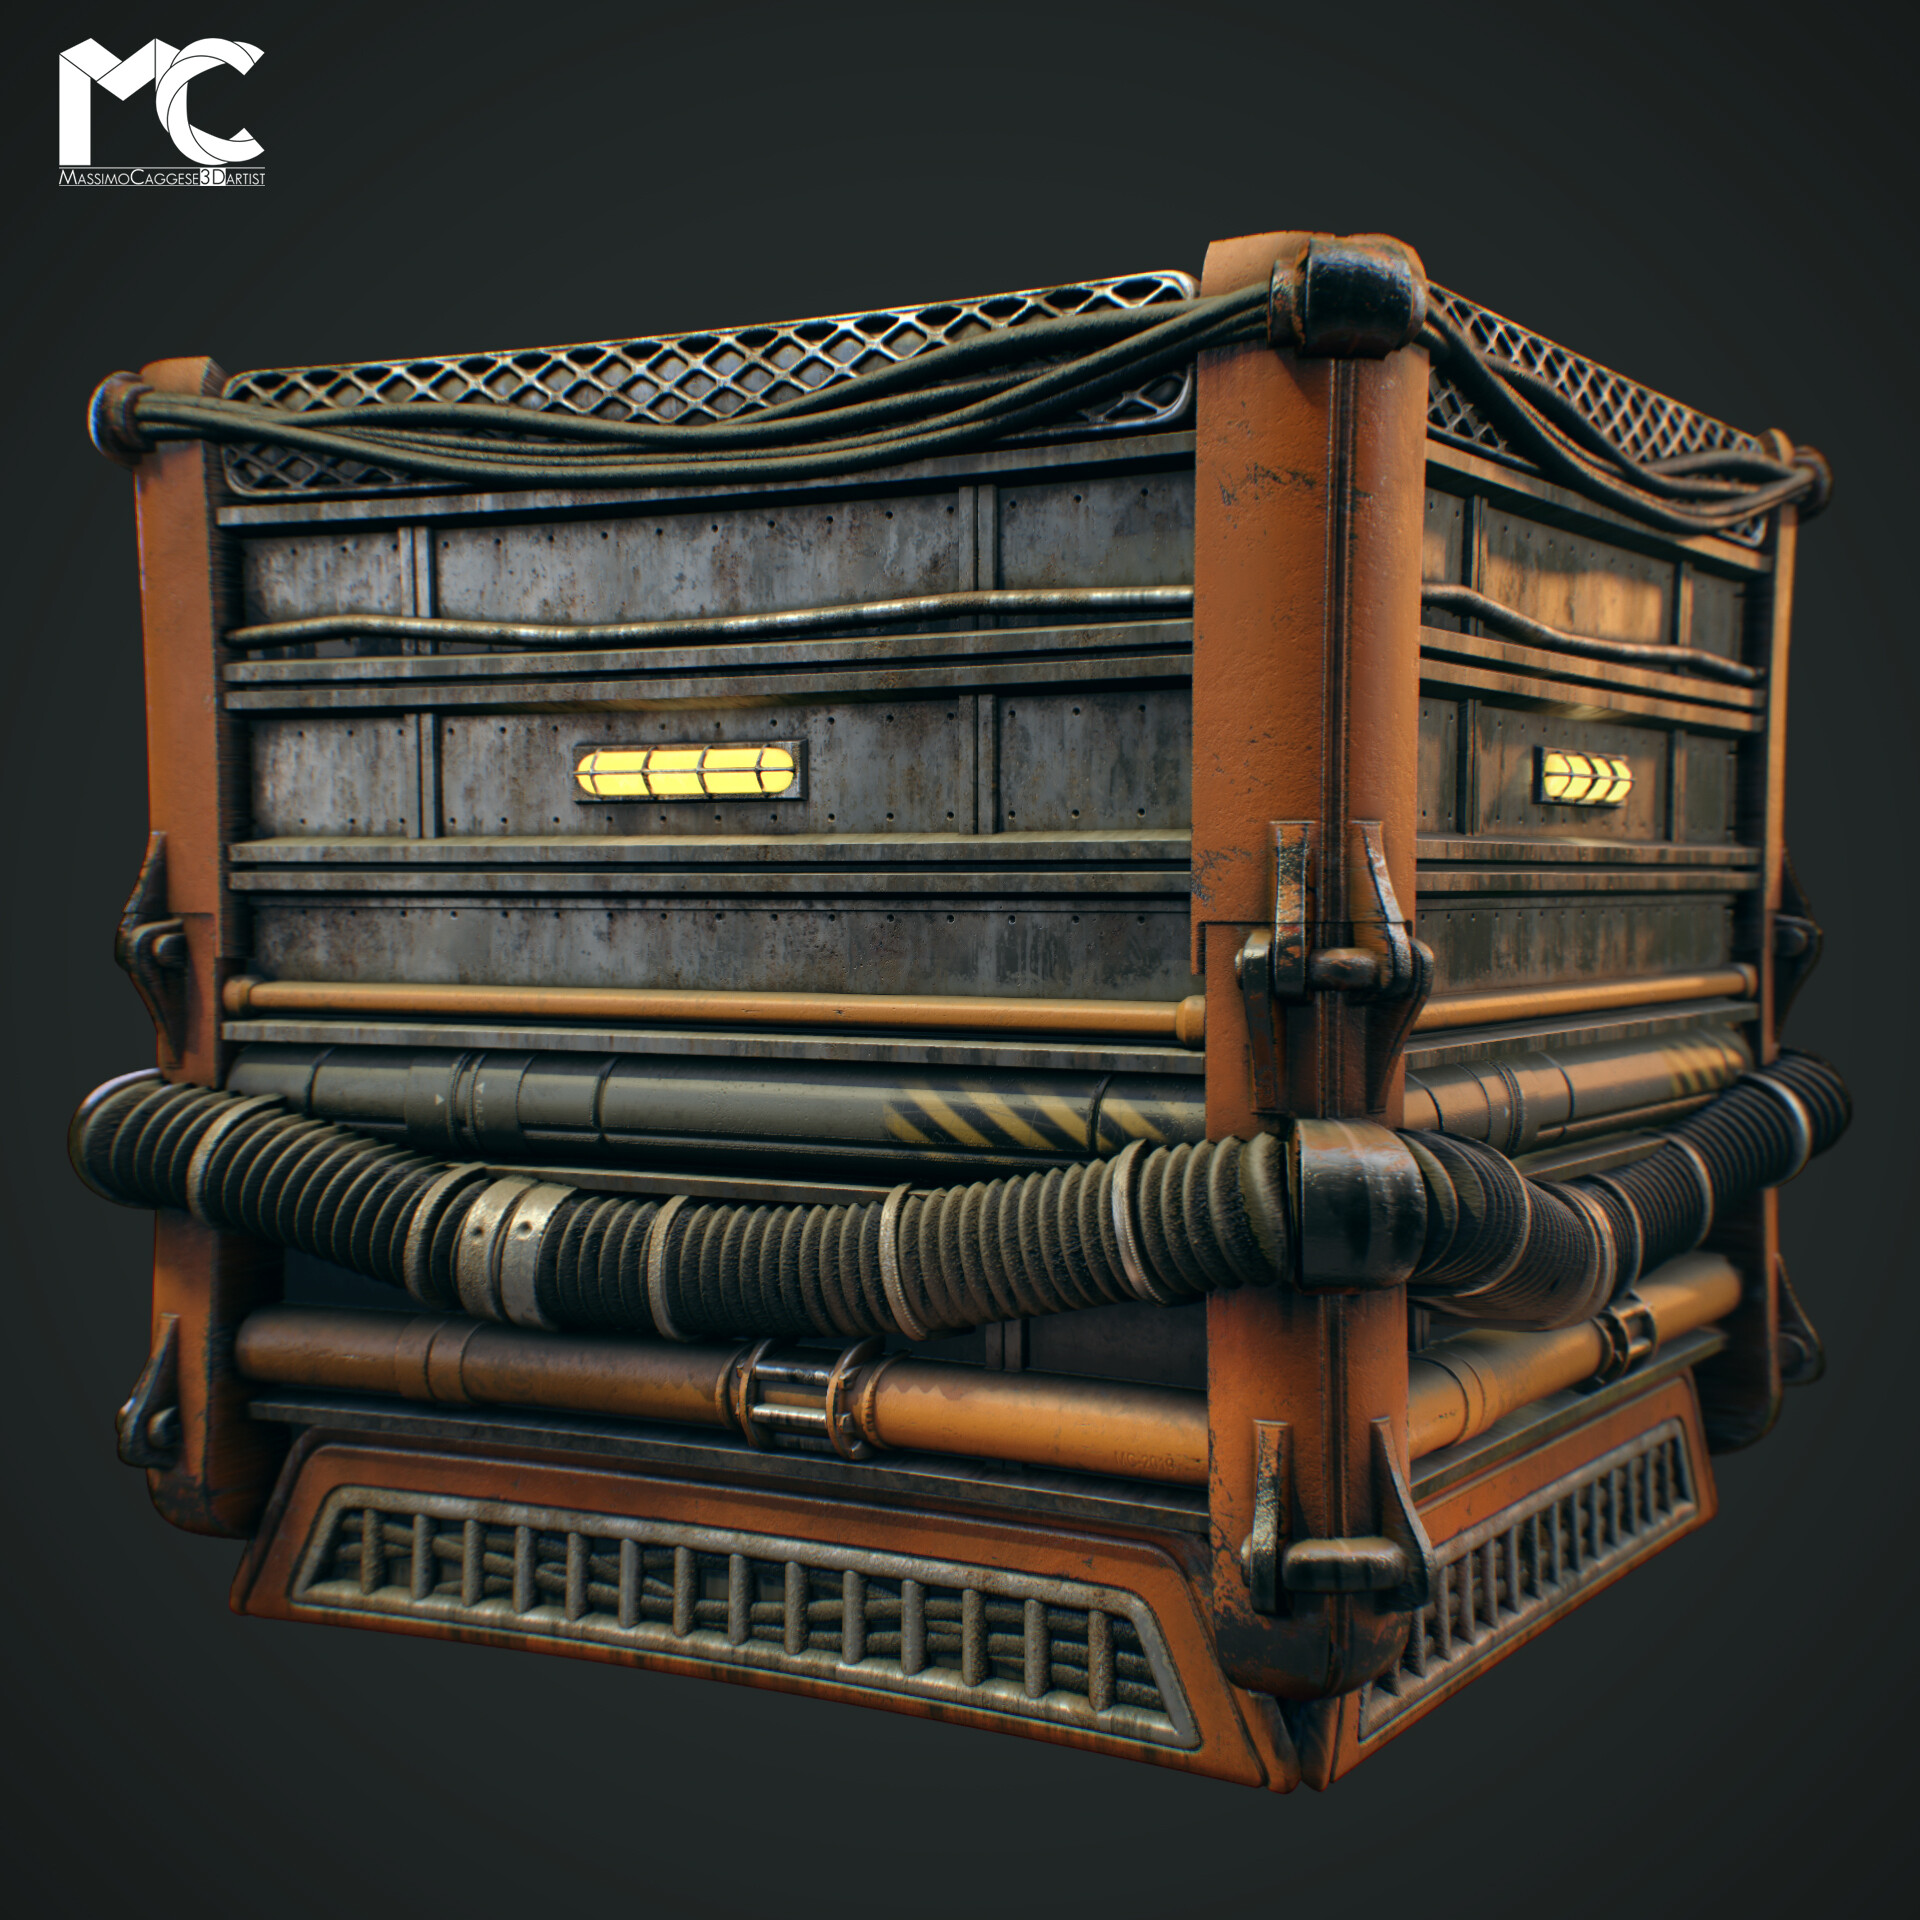 Cube view (Marmoset Toolbag 3).